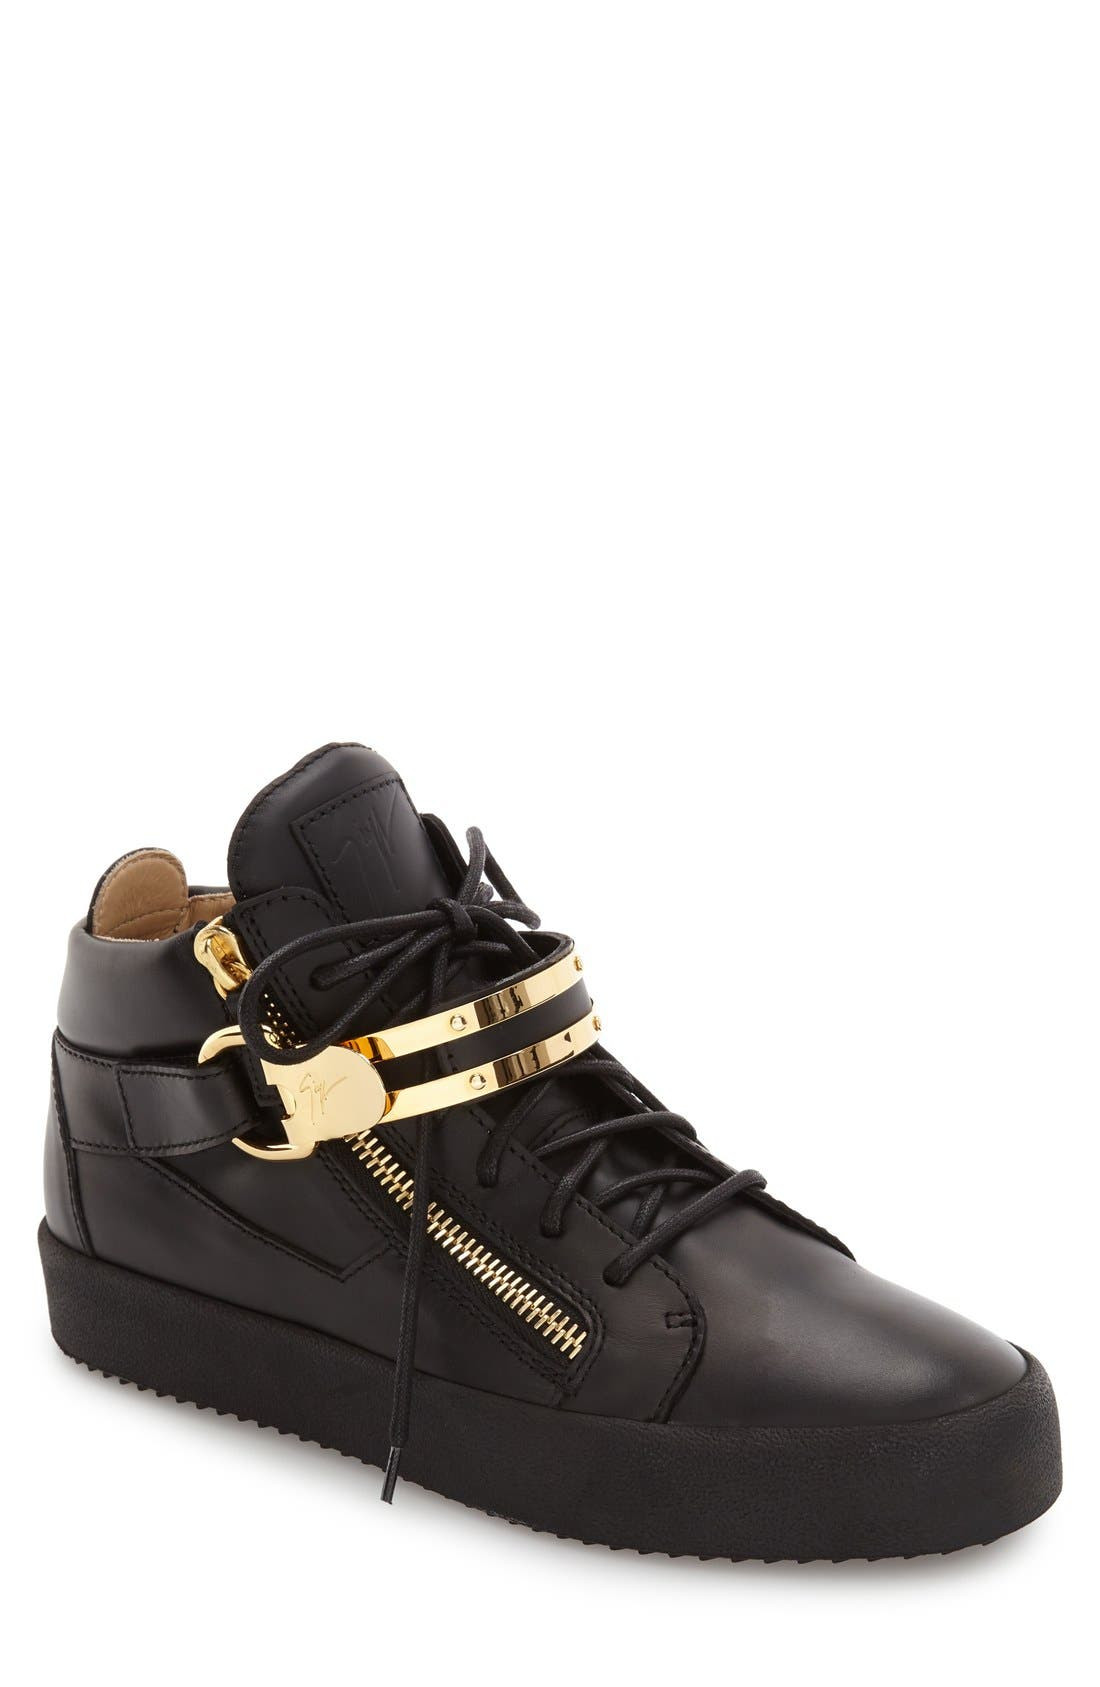 Alternate Image 1 Selected - Giuseppe Zanotti Side Zip High Top Sneaker (Men)